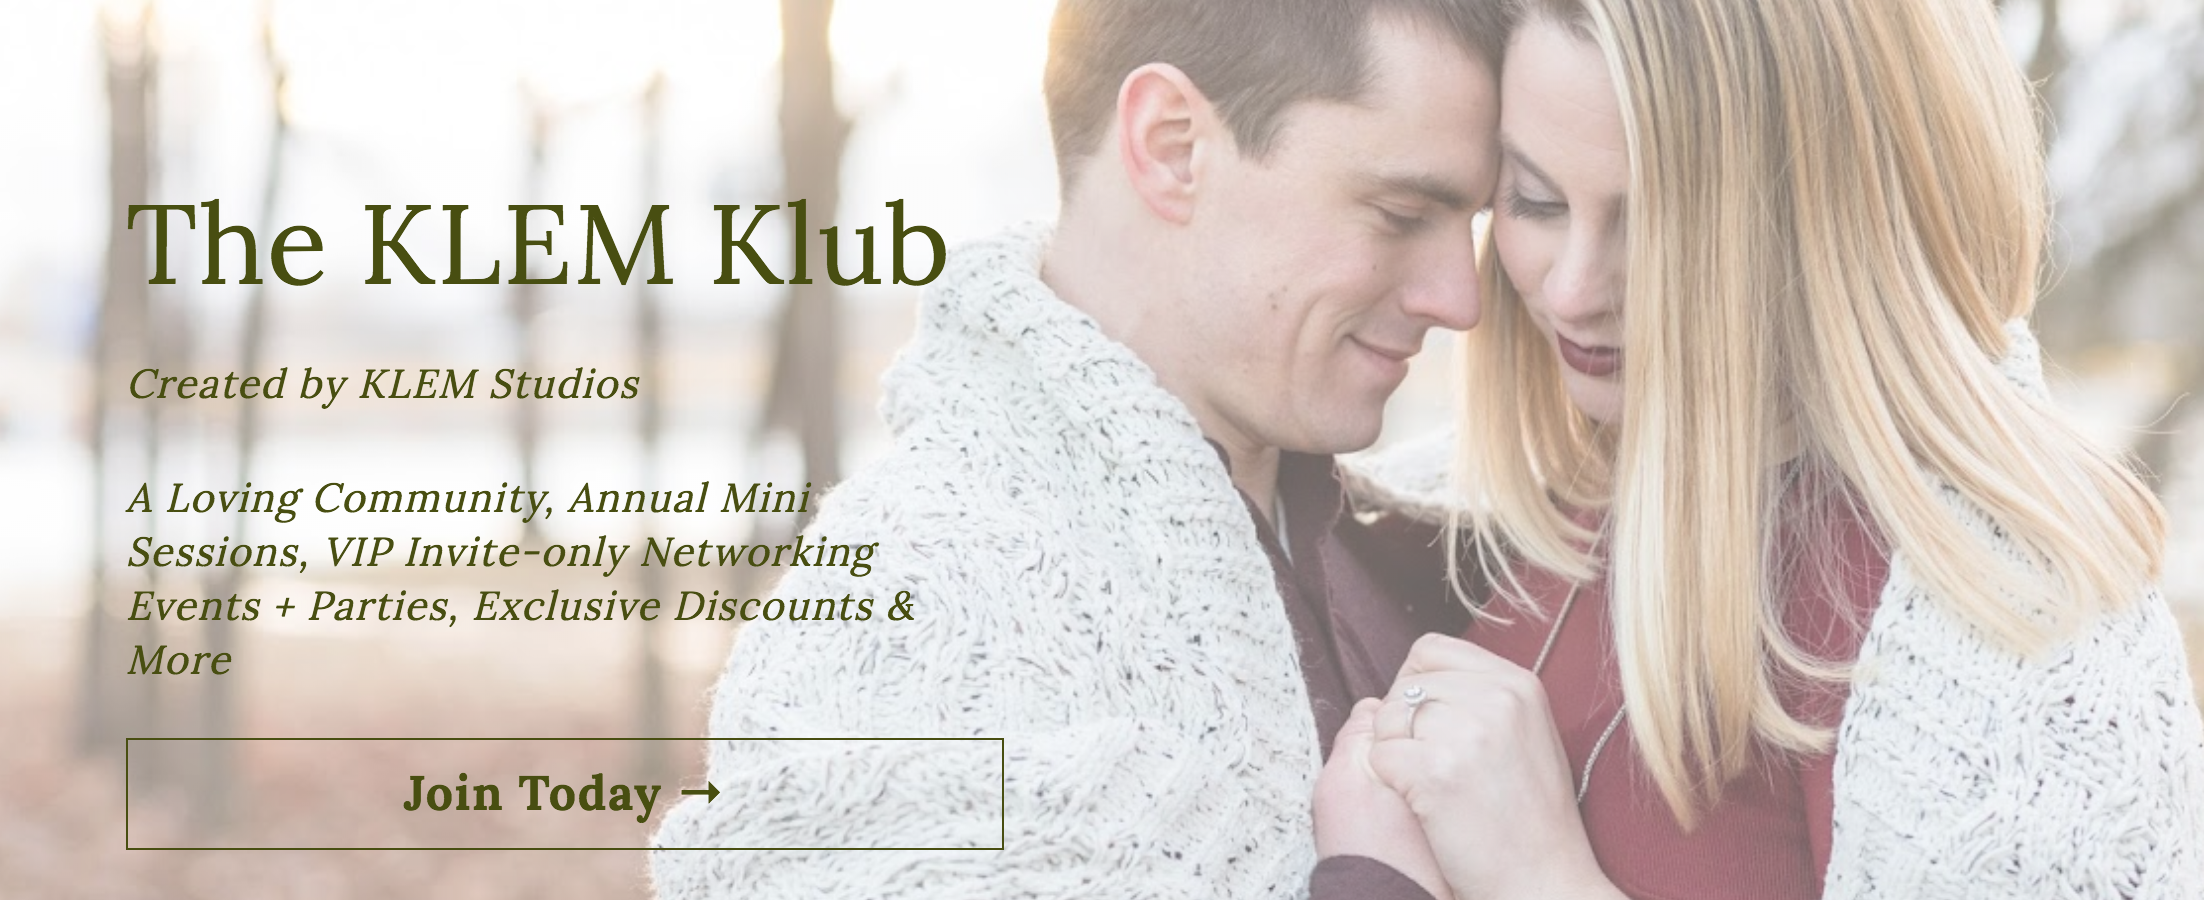 I am so excited to announce that I am launching The KLEM Klub! I created the KLEM Klub for one simple purpose: I want to give more to my clients who I value so much, and I wanted to help them celebrate and cultivate love in their lives.  When you join the KLEM Klub, you're not only getting a positive, loving tribe that will support you on this adventure, you'll also receive two photoshoots of your choice throughout the year, exclusive discounts on any workshop or class through KLEM Studios, access to invite-only networking events, fun swag and so much more!  Enrollment will be open through March 31st, 2019, and your annual membership will begin April 1st, 2019!